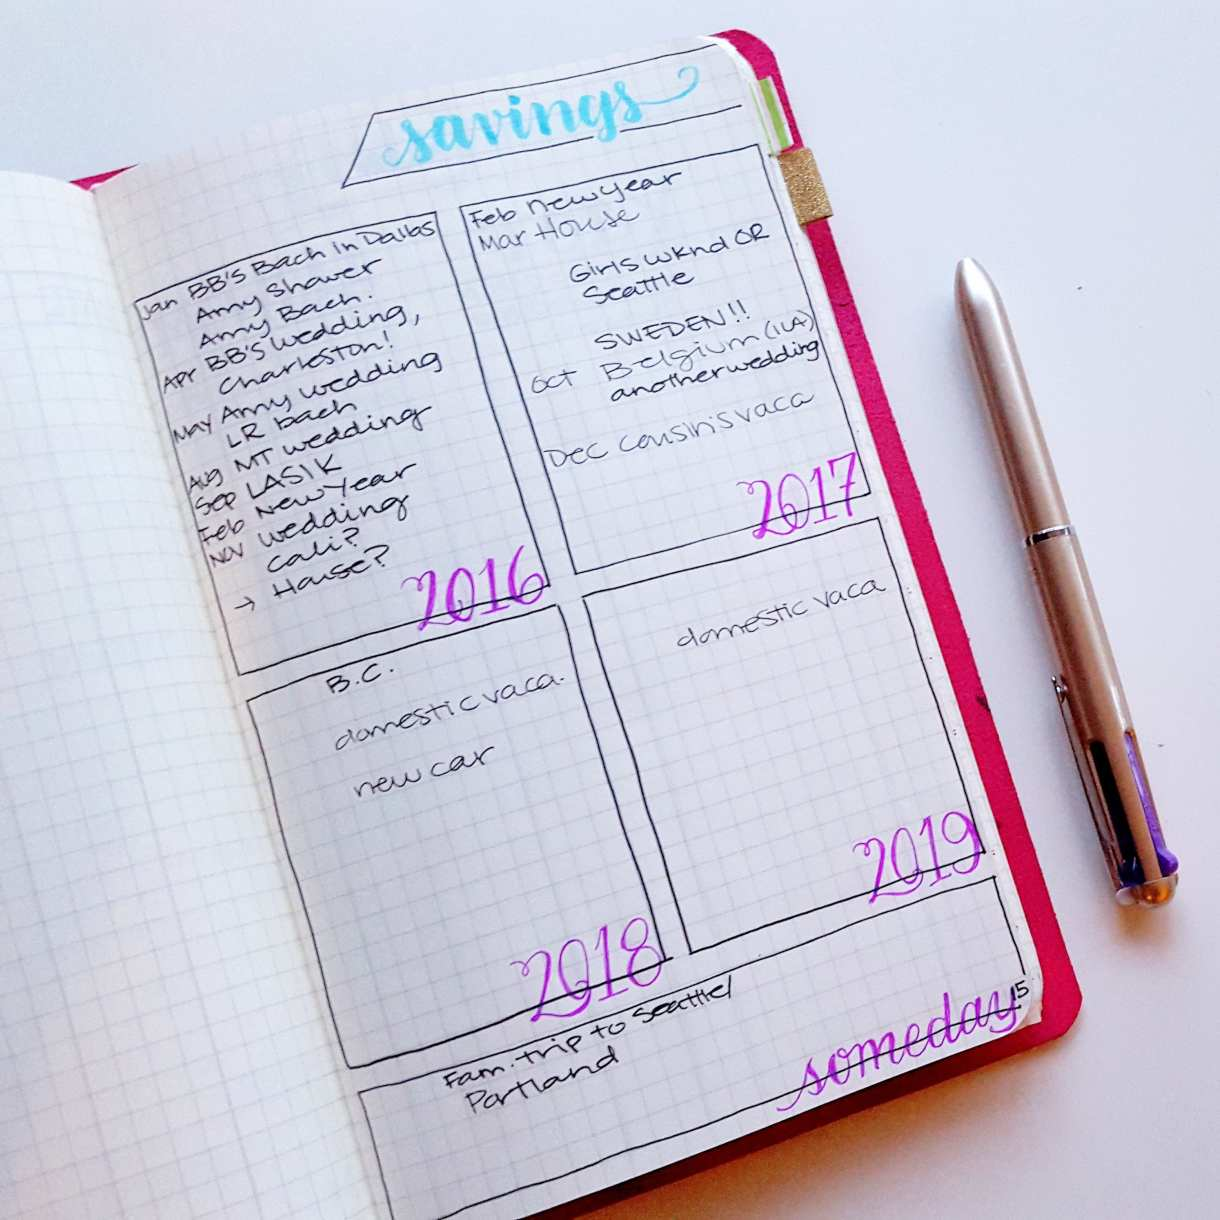 When creating a budget, first figure out what you are trying to save money for - and you might track that in a collection in your bullet journal // www.prettyprintsandpaper.com